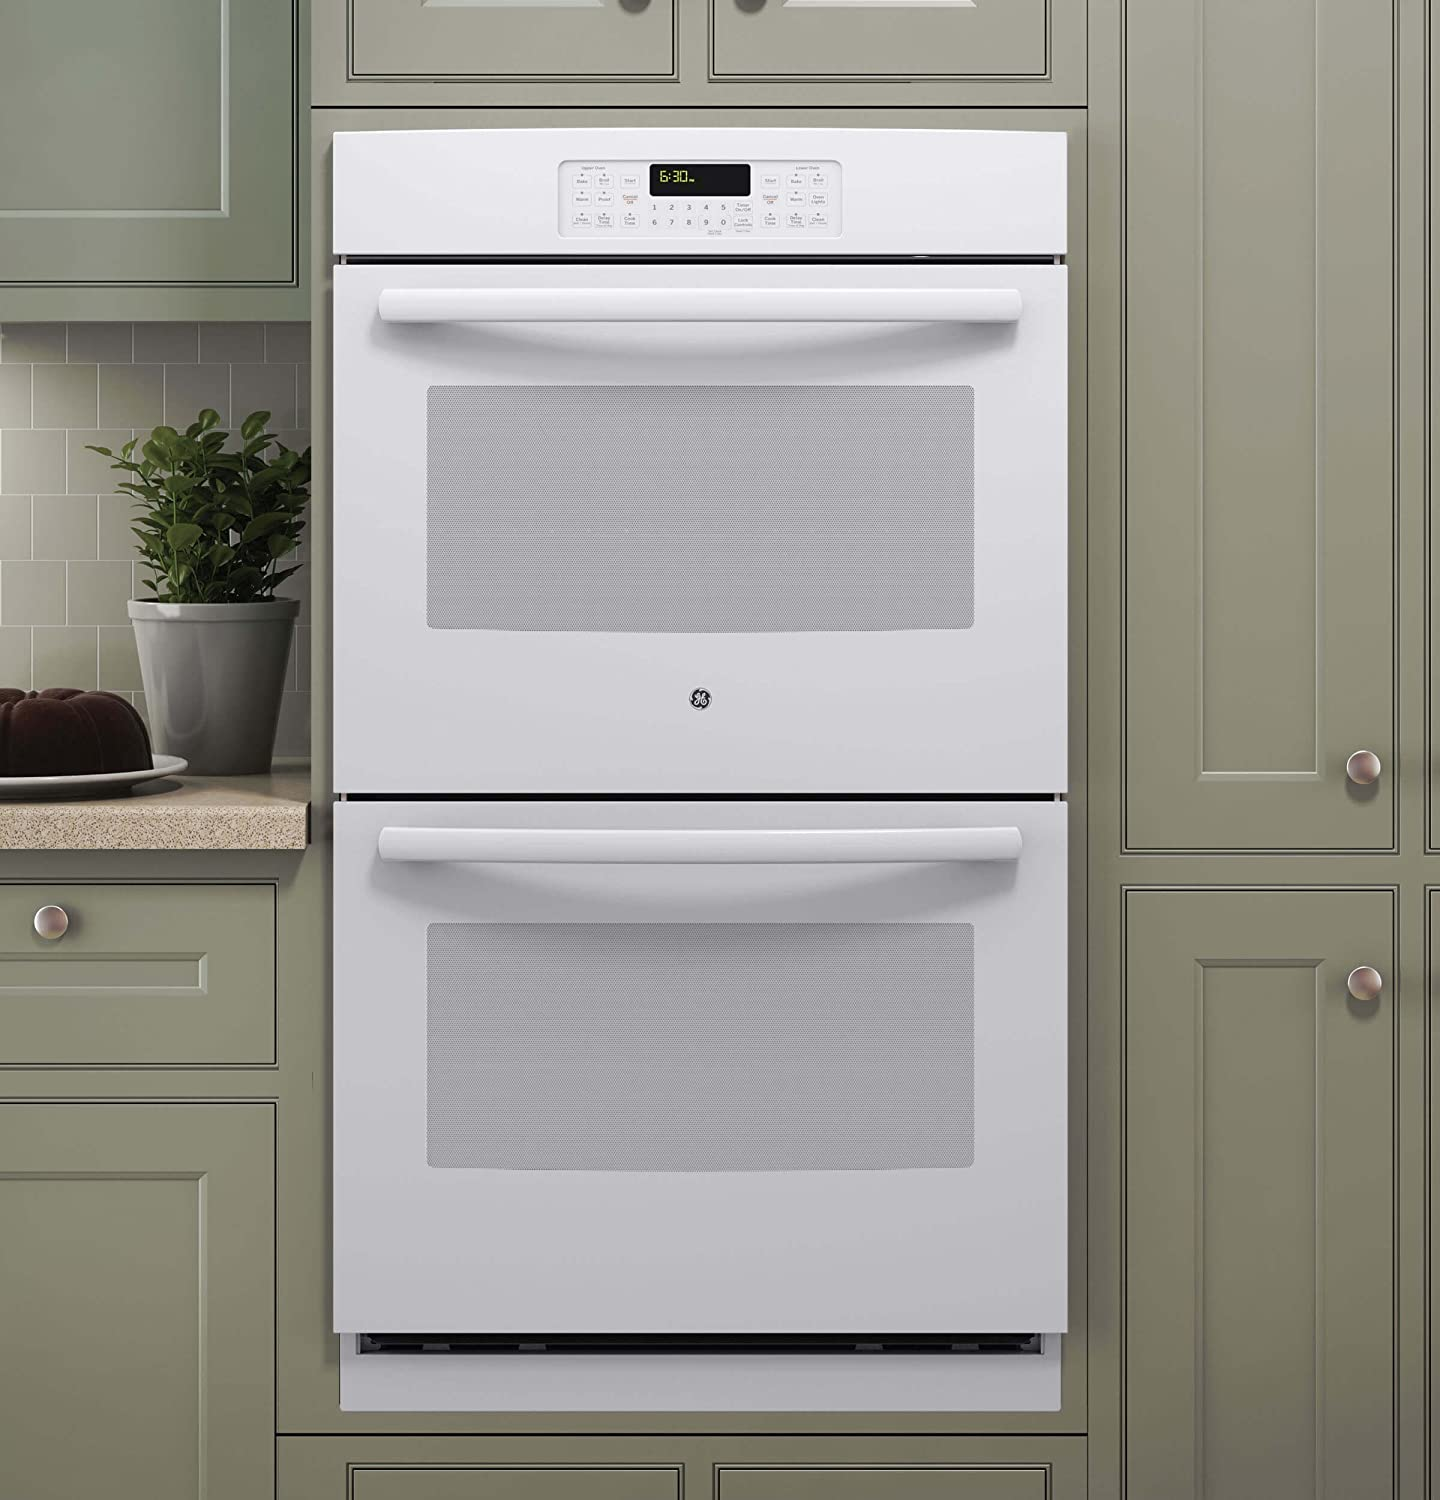 GE JT3500DFWW 30' White Electric Double Wall Oven